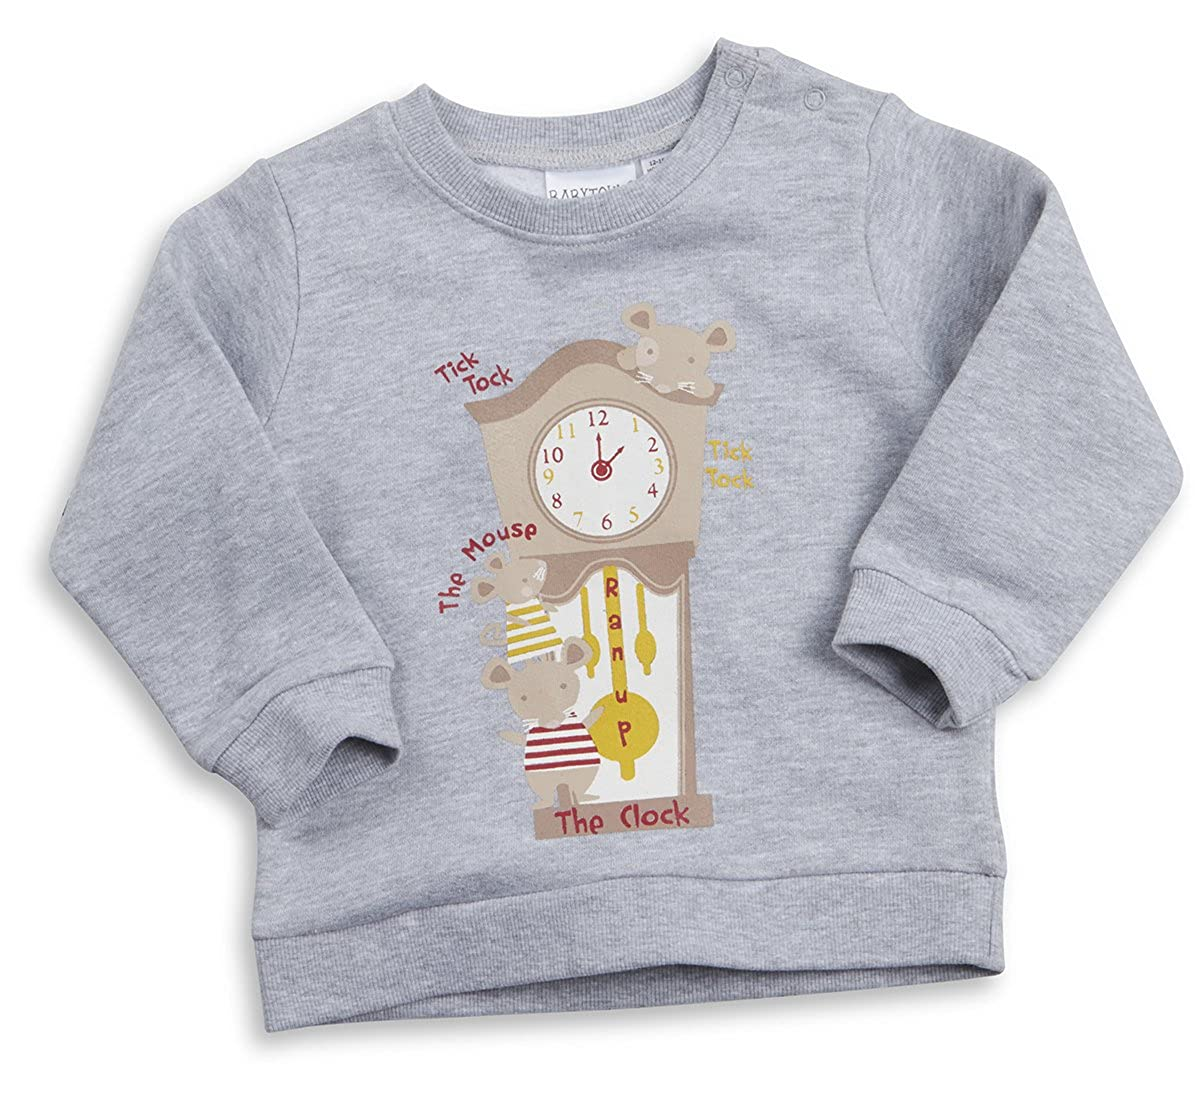 Ages 9-24m Nursery Tops Babytown Unisex Babies Long Sleeve Pull Over Sweater